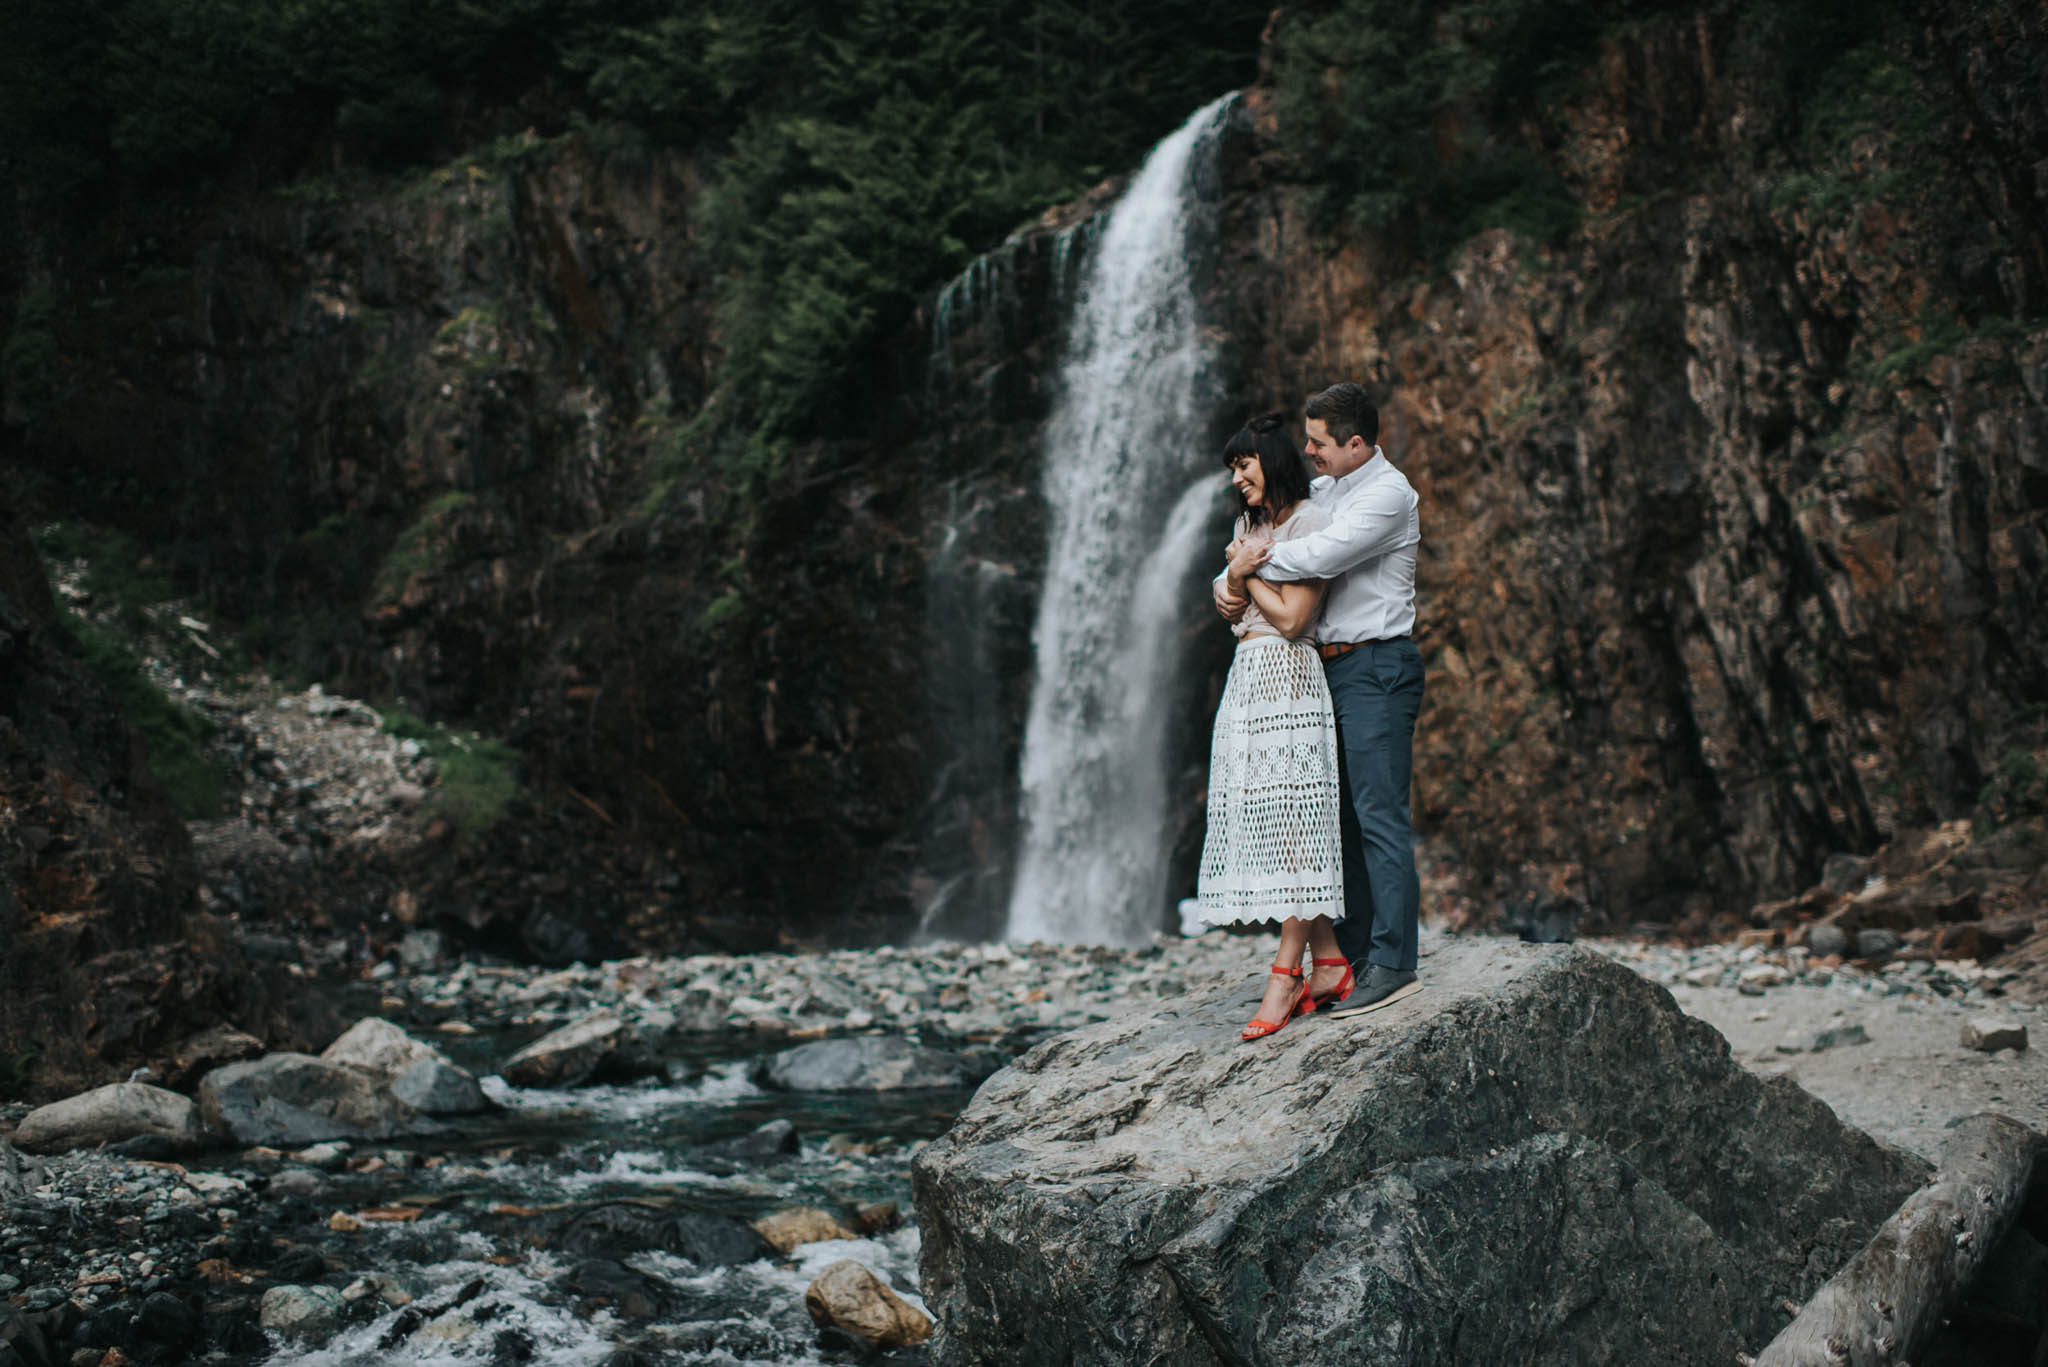 This photography is of a couple sharing a special moment under franklin falls